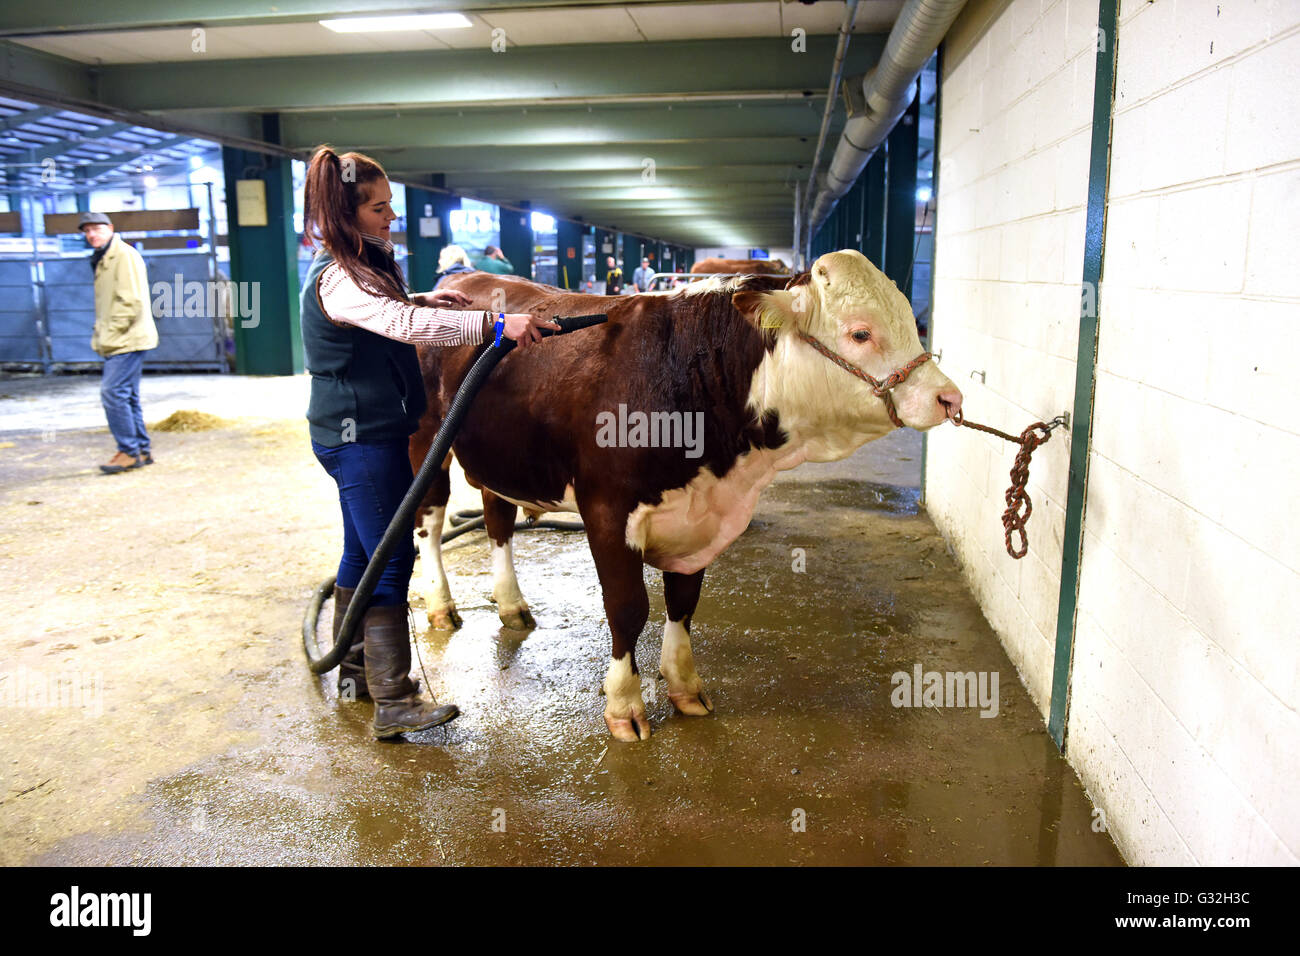 Hereford bull being groomed with hair dryer at Staffordshire County Show - Stock Image